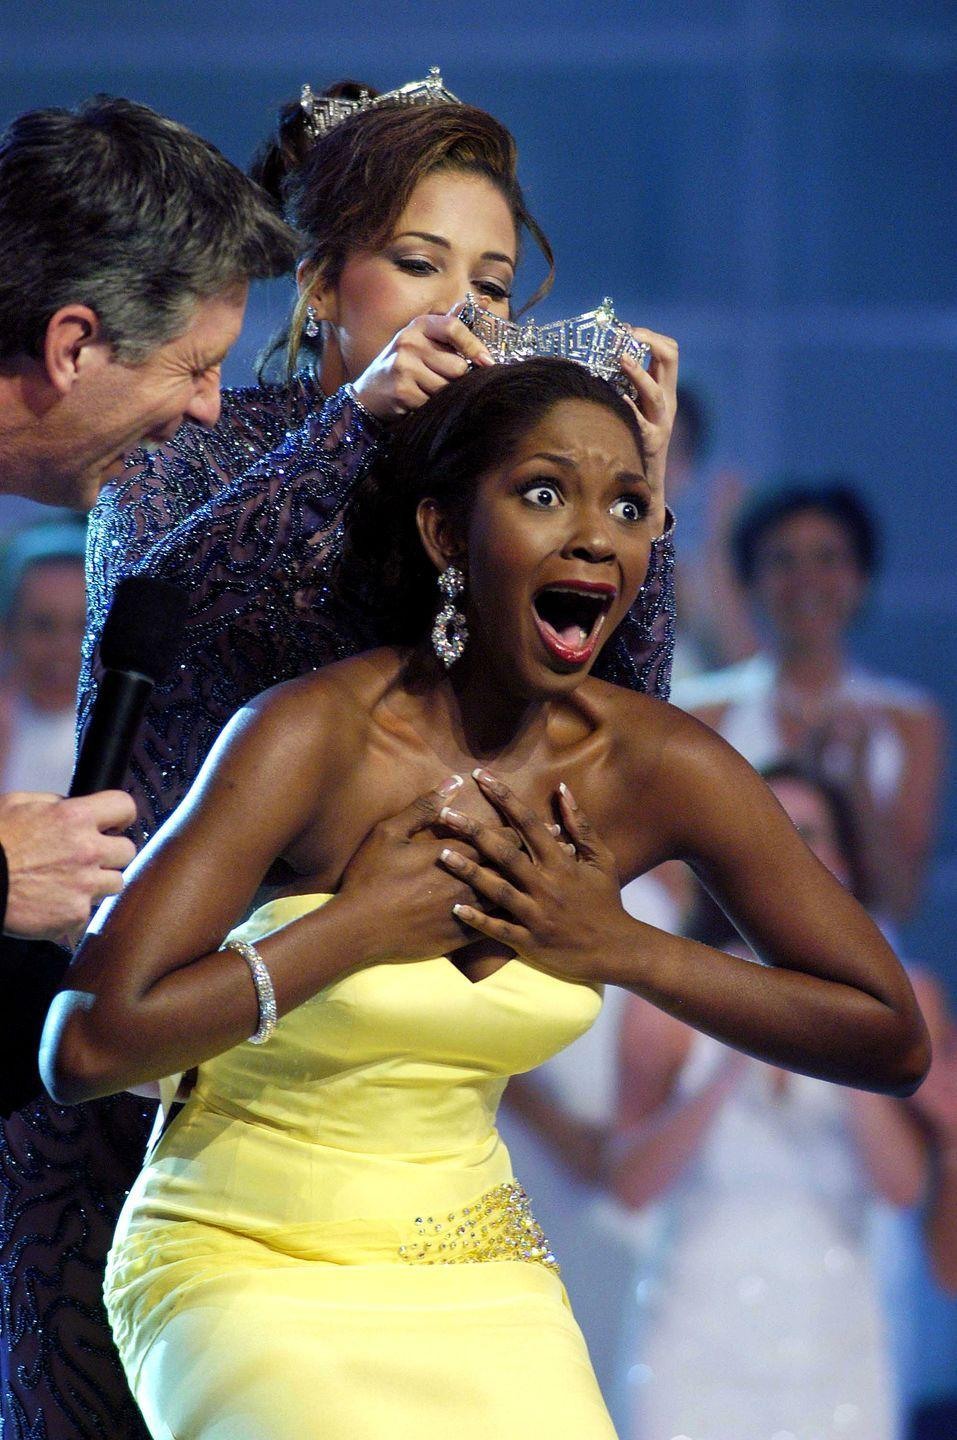 <p>Ericka Dunlap brought a bit of her native Sunshine State with her to the pageant in the form of a canary yellow strapless evening gown. </p>